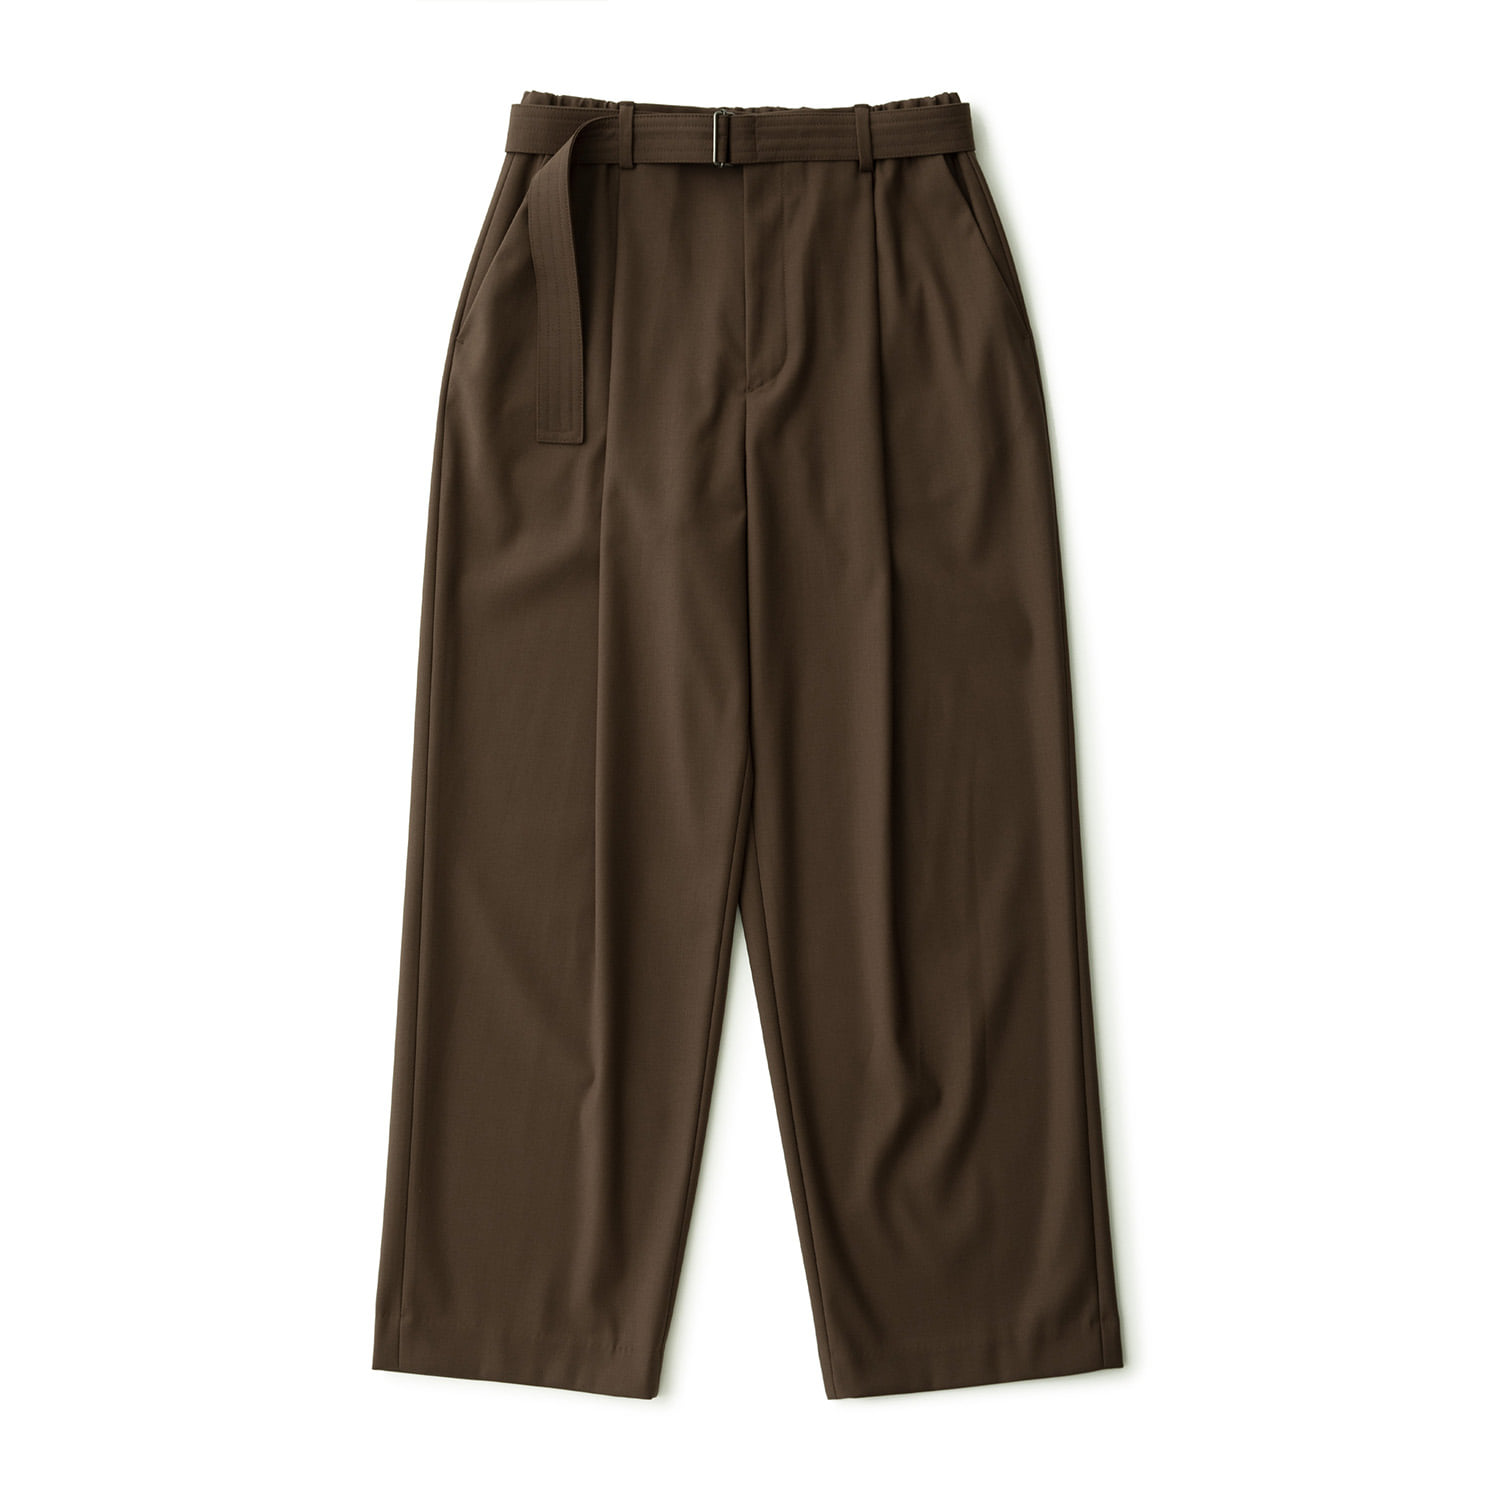 Calm Banded Pants (Taupe Brown)